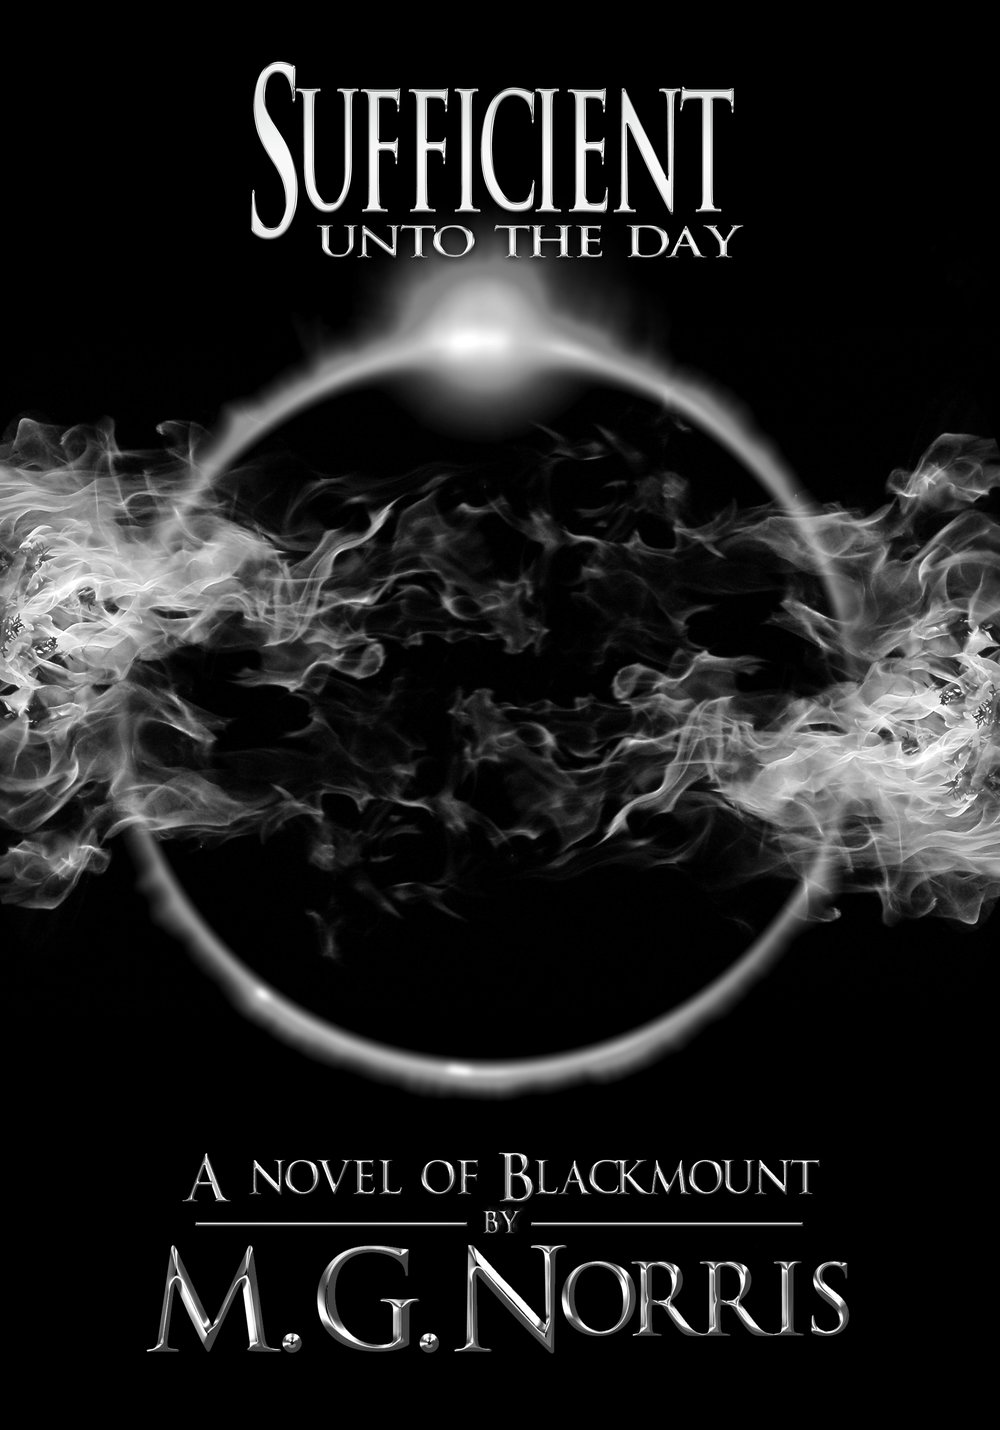 Blackmount Book 6 - Sufficient Unto The Day  release date - tbd